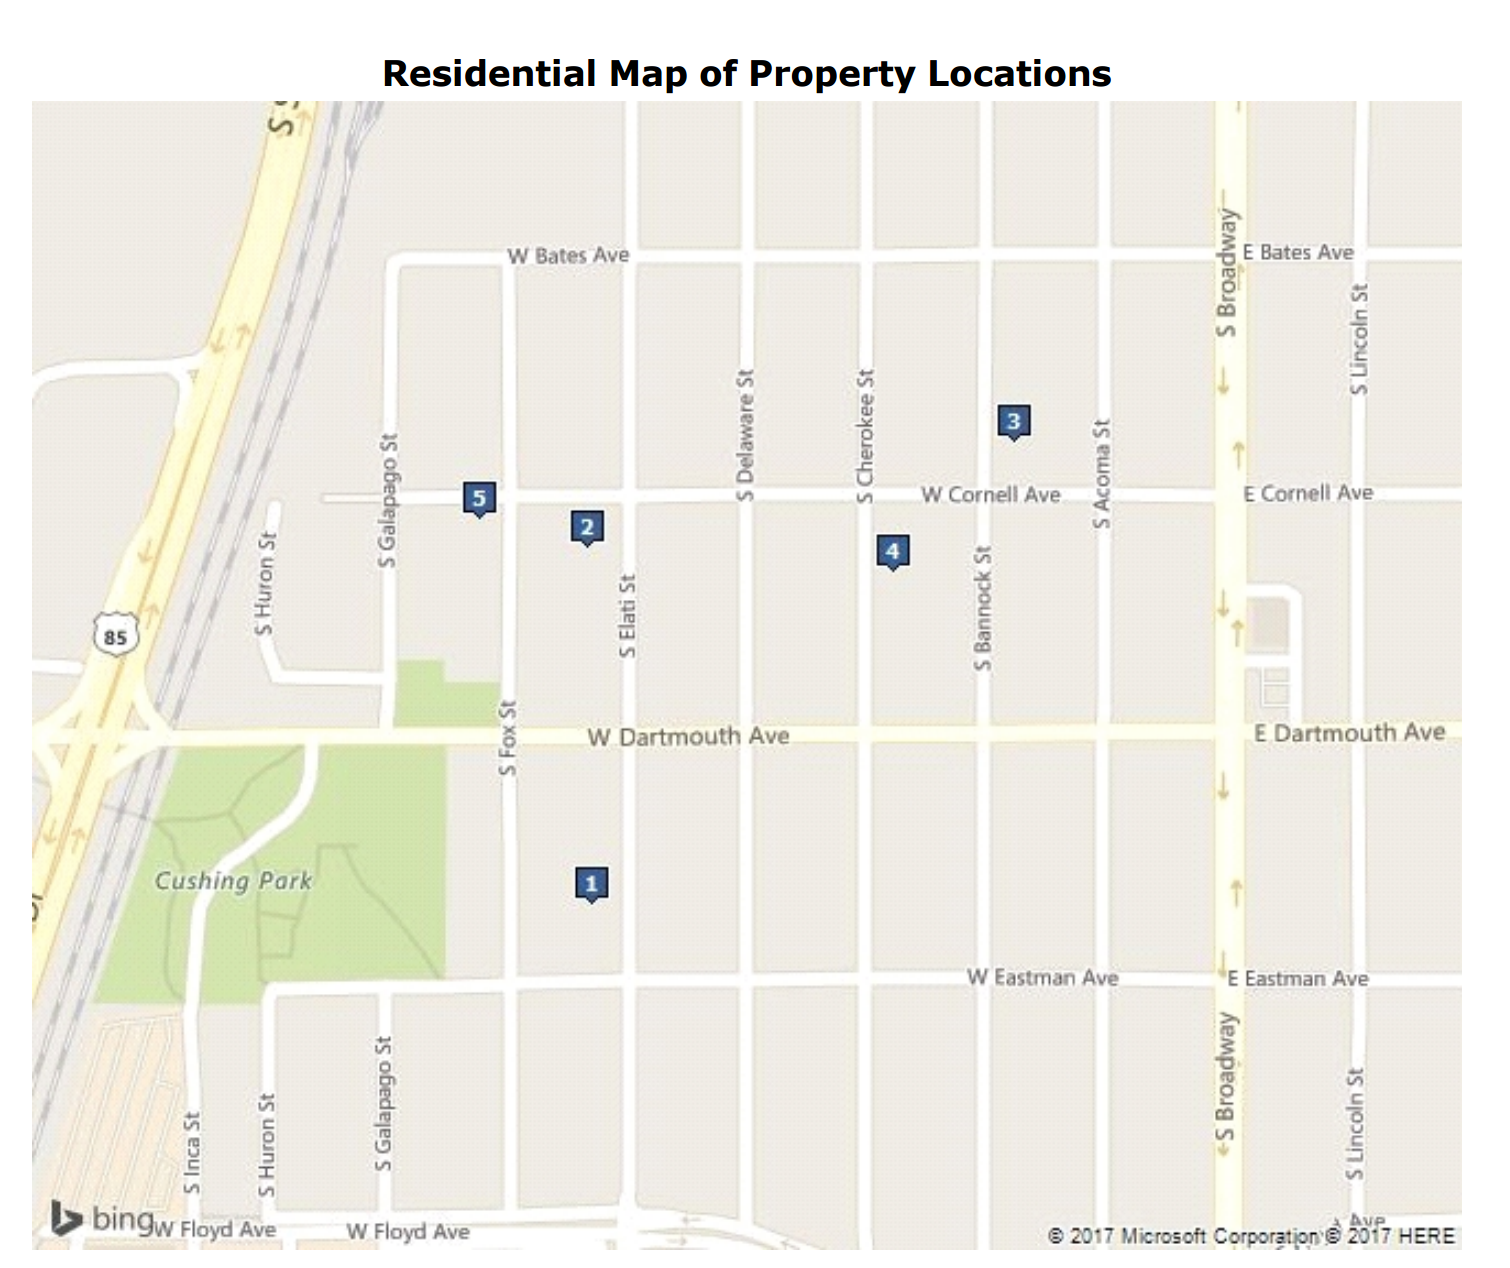 Map of Property Locations9962 Denver Realtor Reviews Englewood Home For Sale 3165 S Elati St